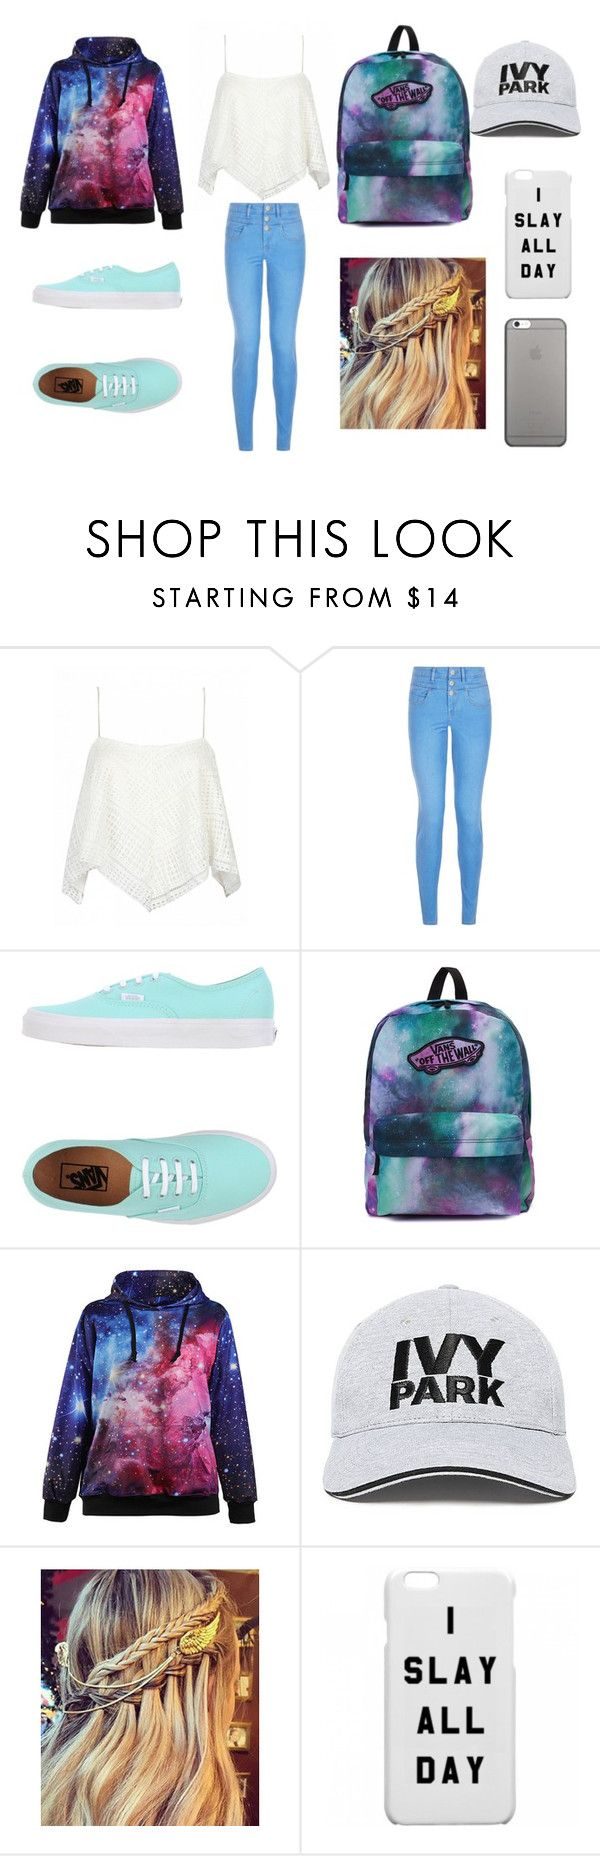 Outfit 8 by sarahcb2002 on Polyvore featuring New Look, Vans, Native Union and Ivy Park